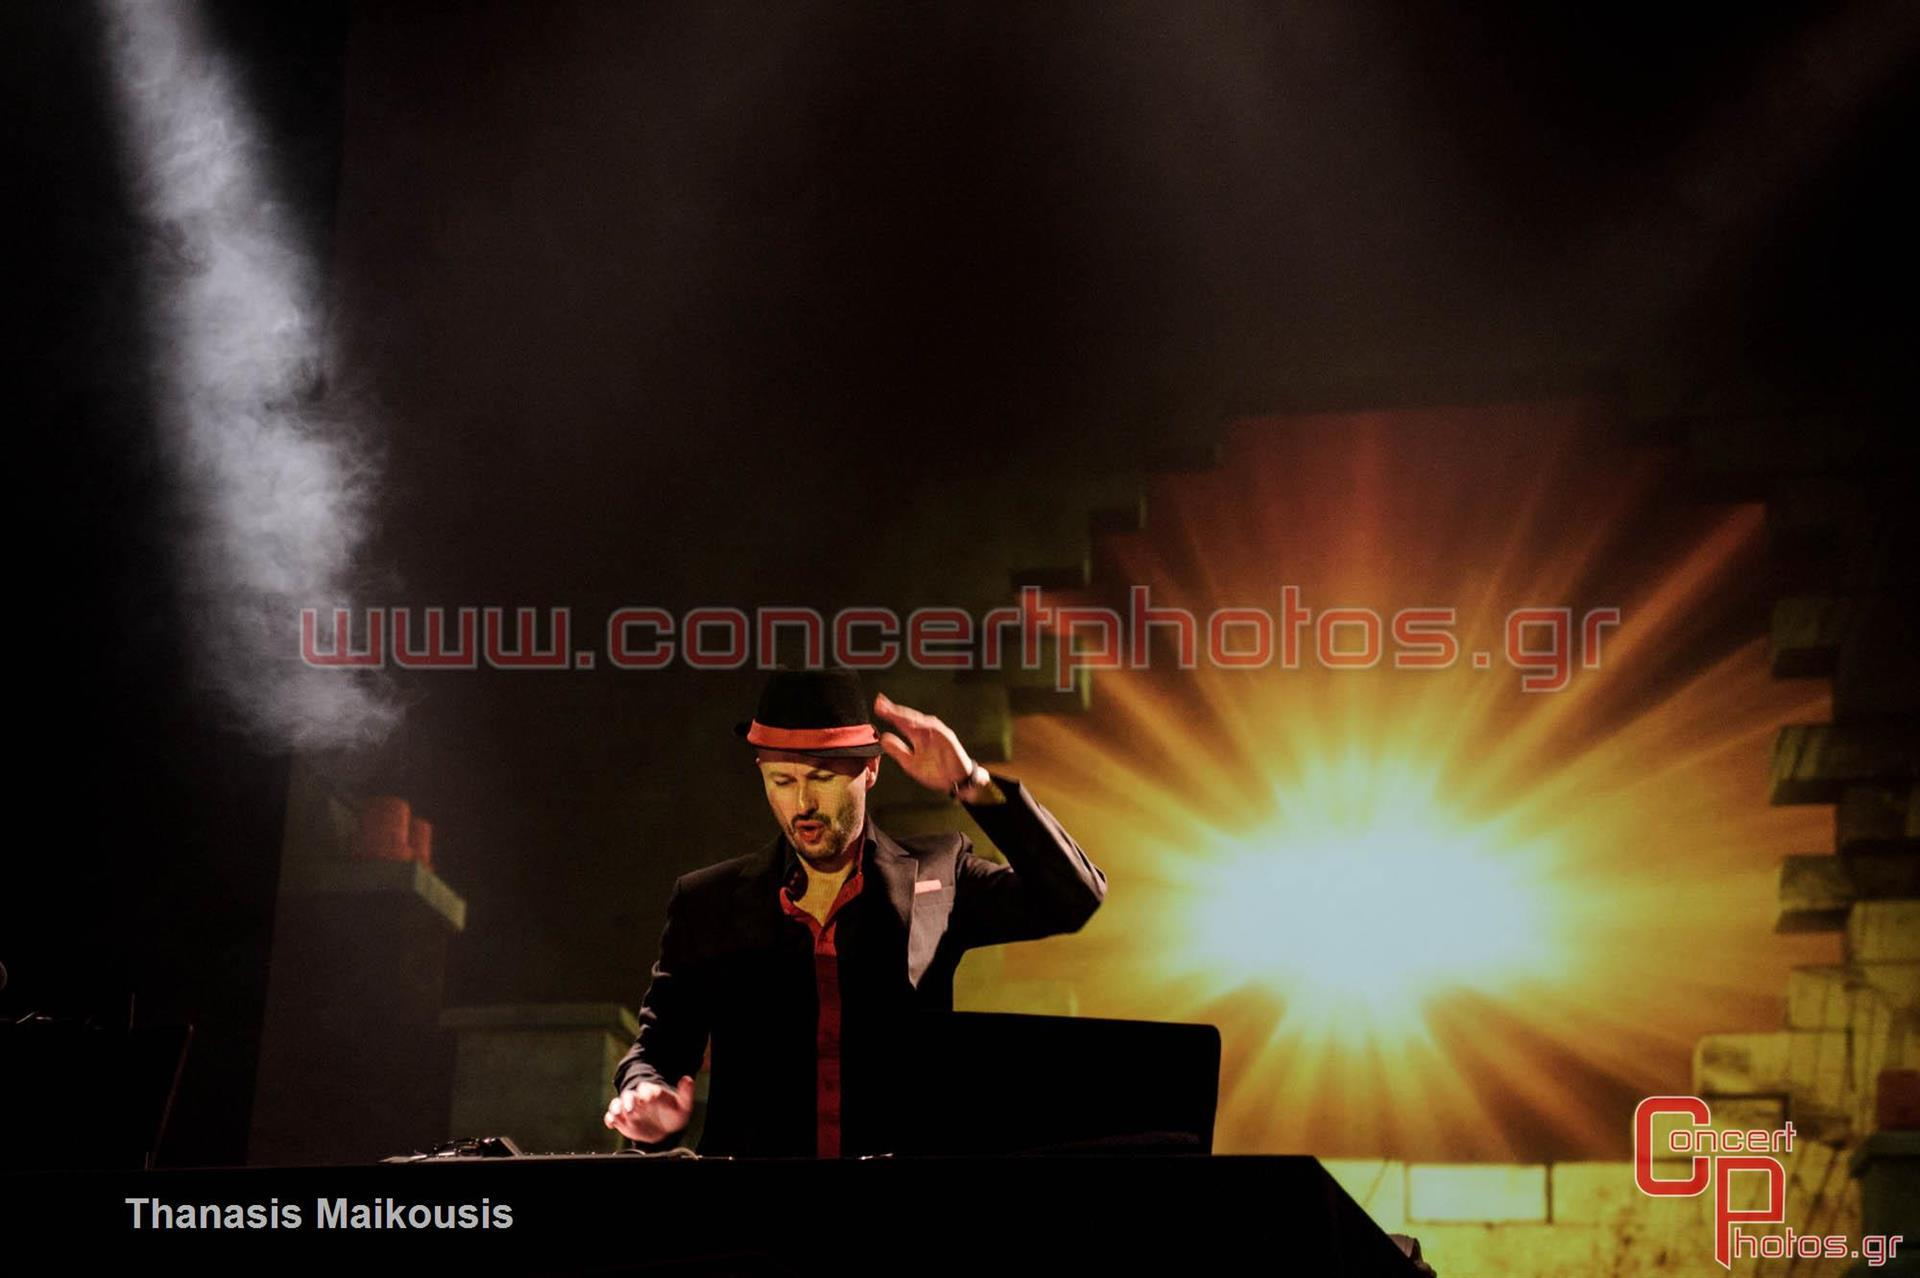 Wax Tailor - photographer: Thanasis Maikousis - ConcertPhotos-7650